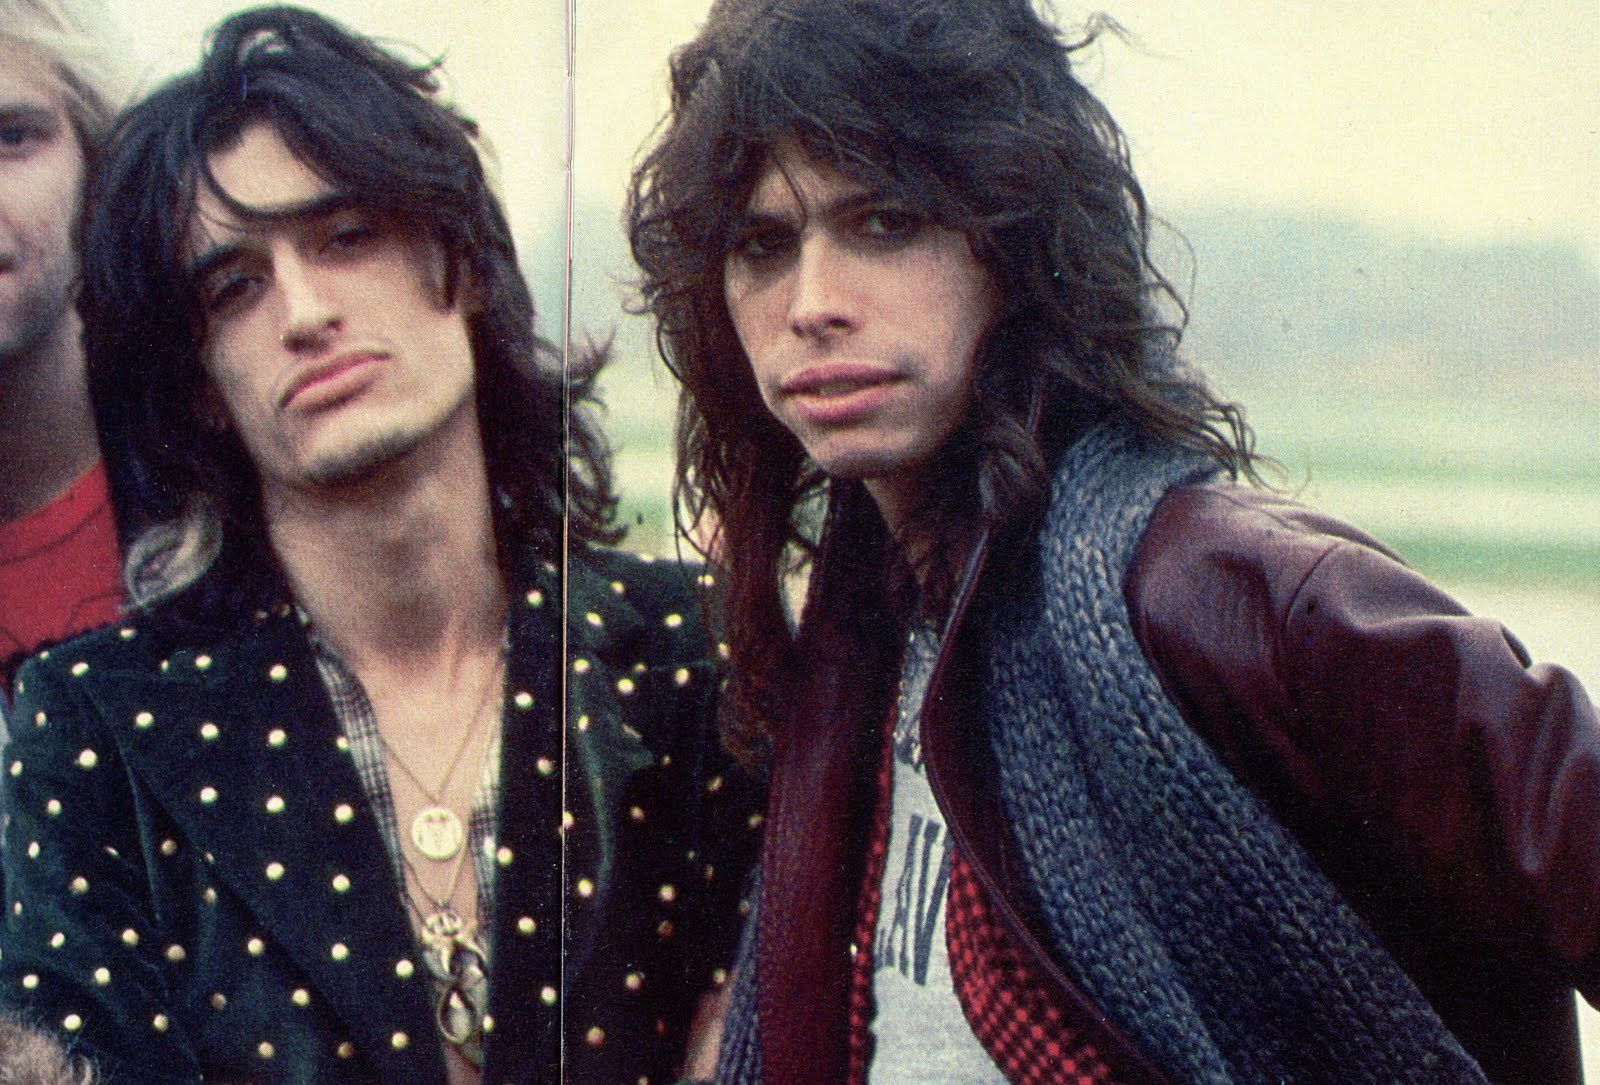 Steven Tyler - 1970's - The Toxic Twins - Joe Perry